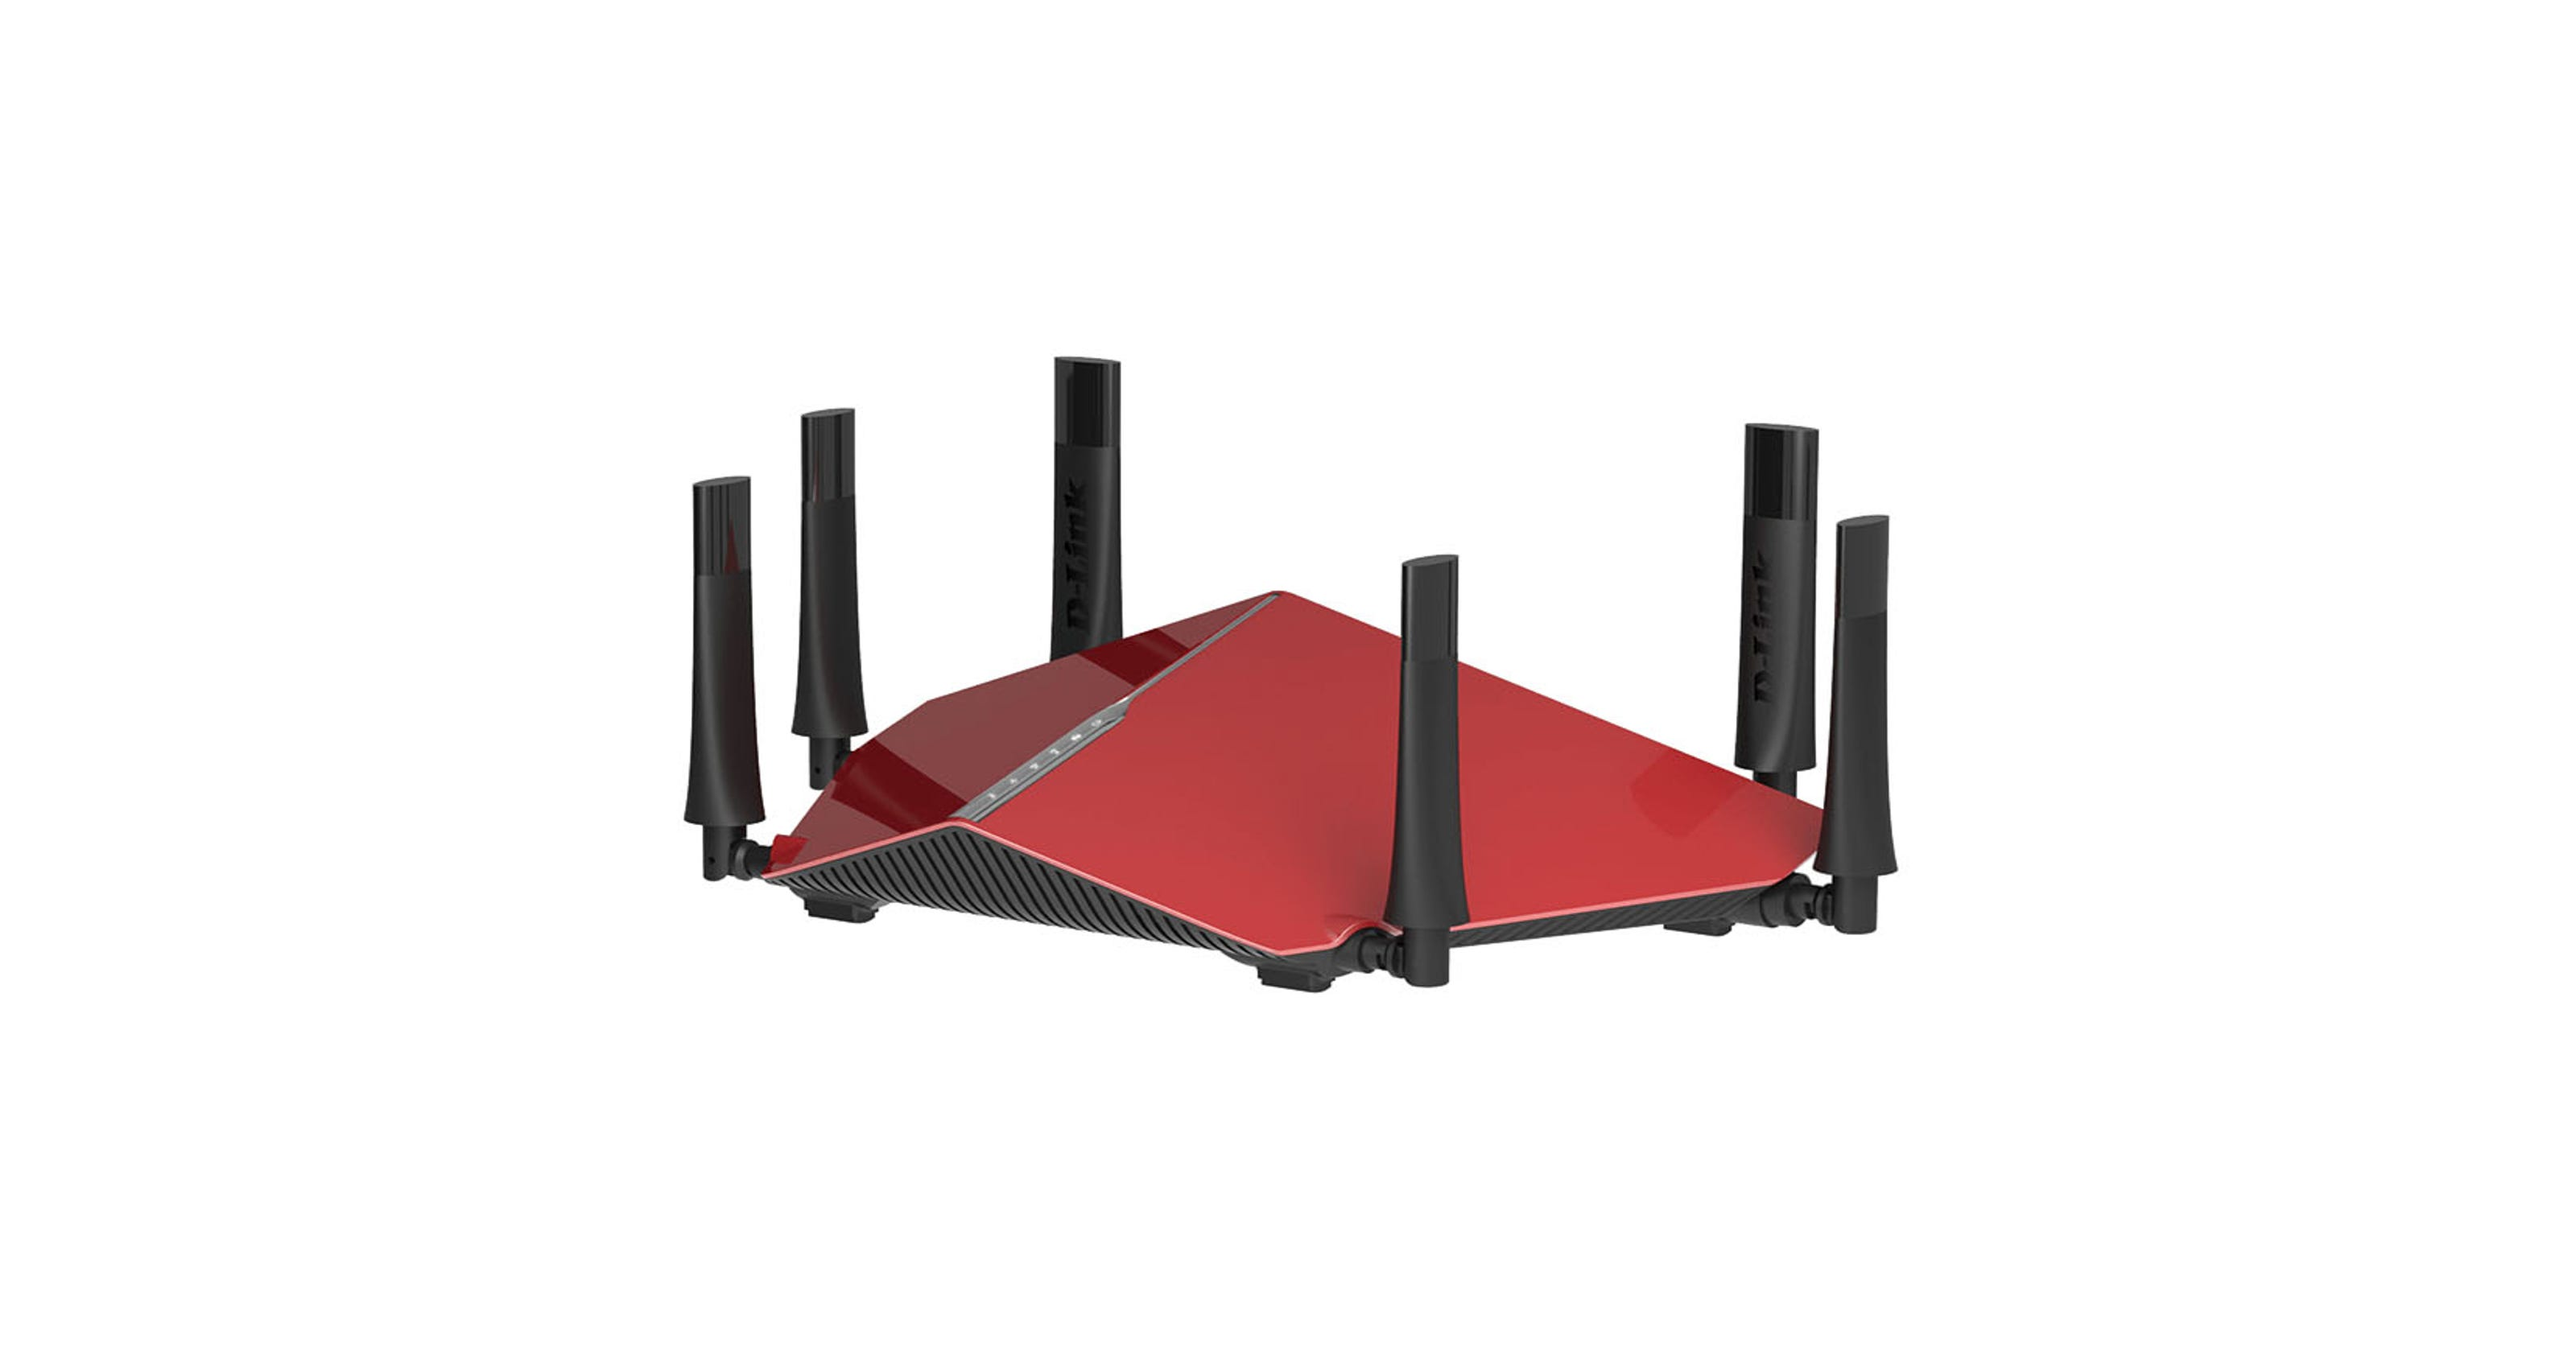 6 Ways To Speed Up Slow Wi Fi Building Diagram For Wireless Routers